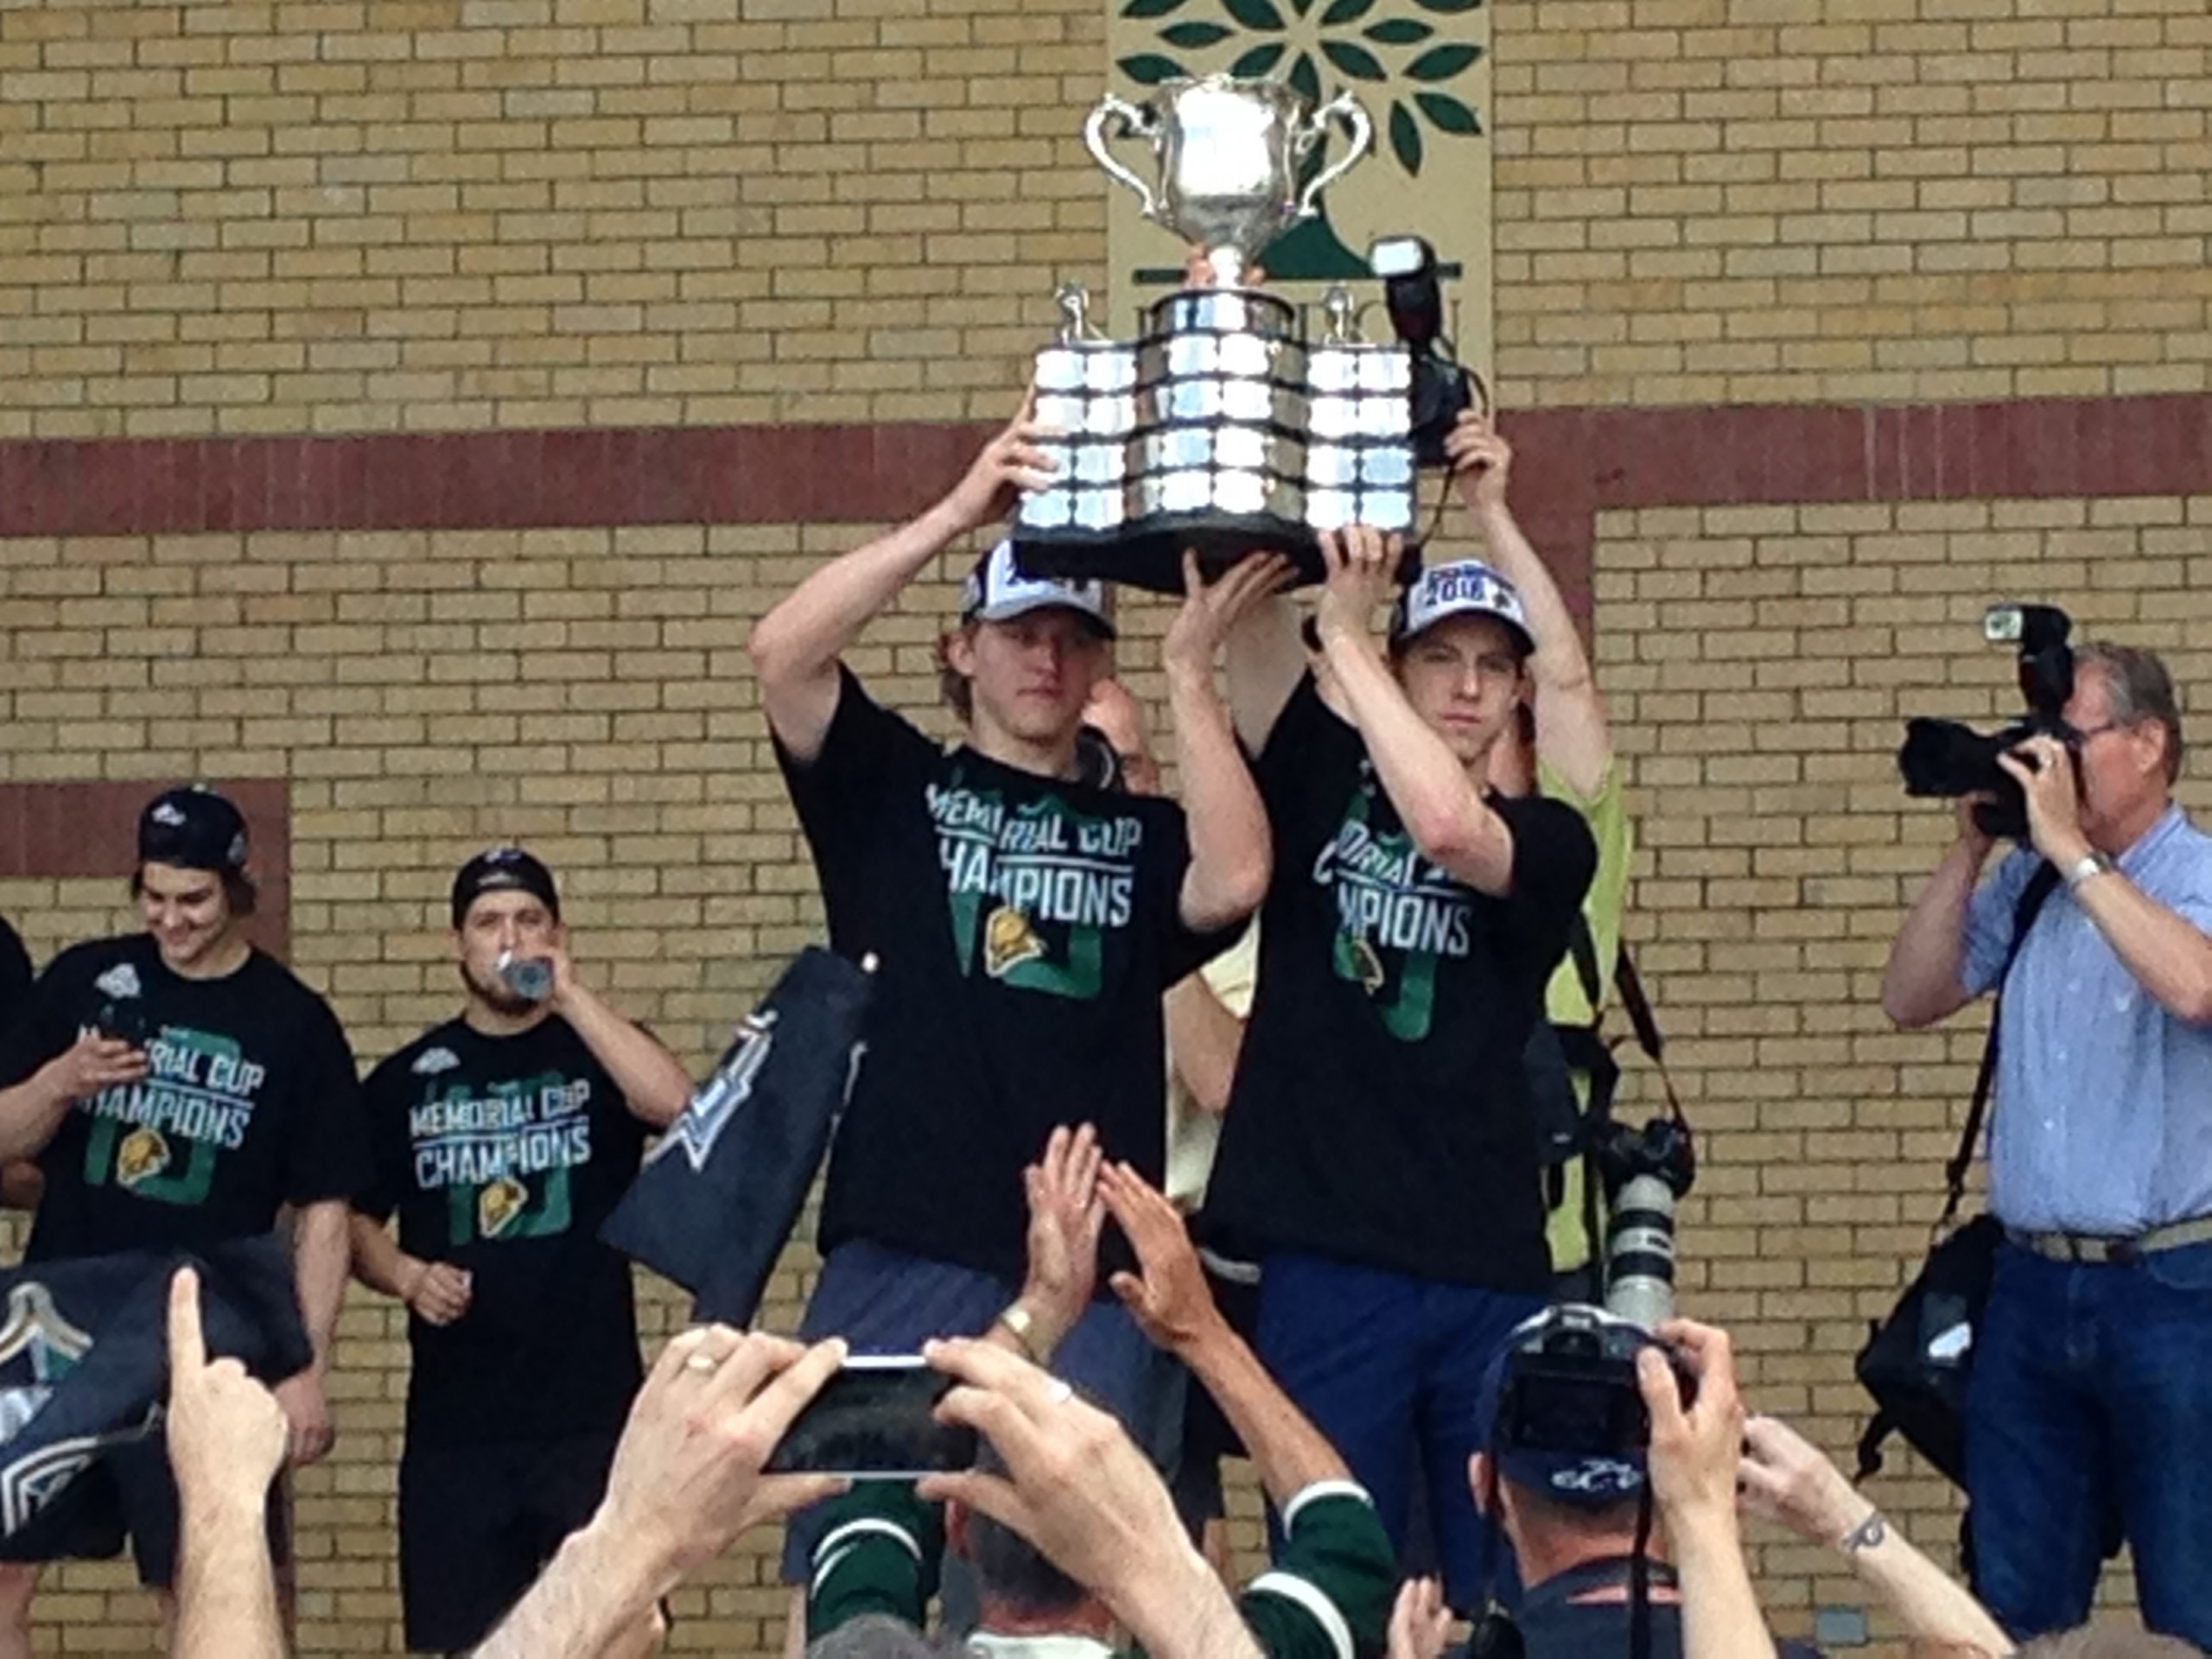 London Knights return home to flaunt hardware